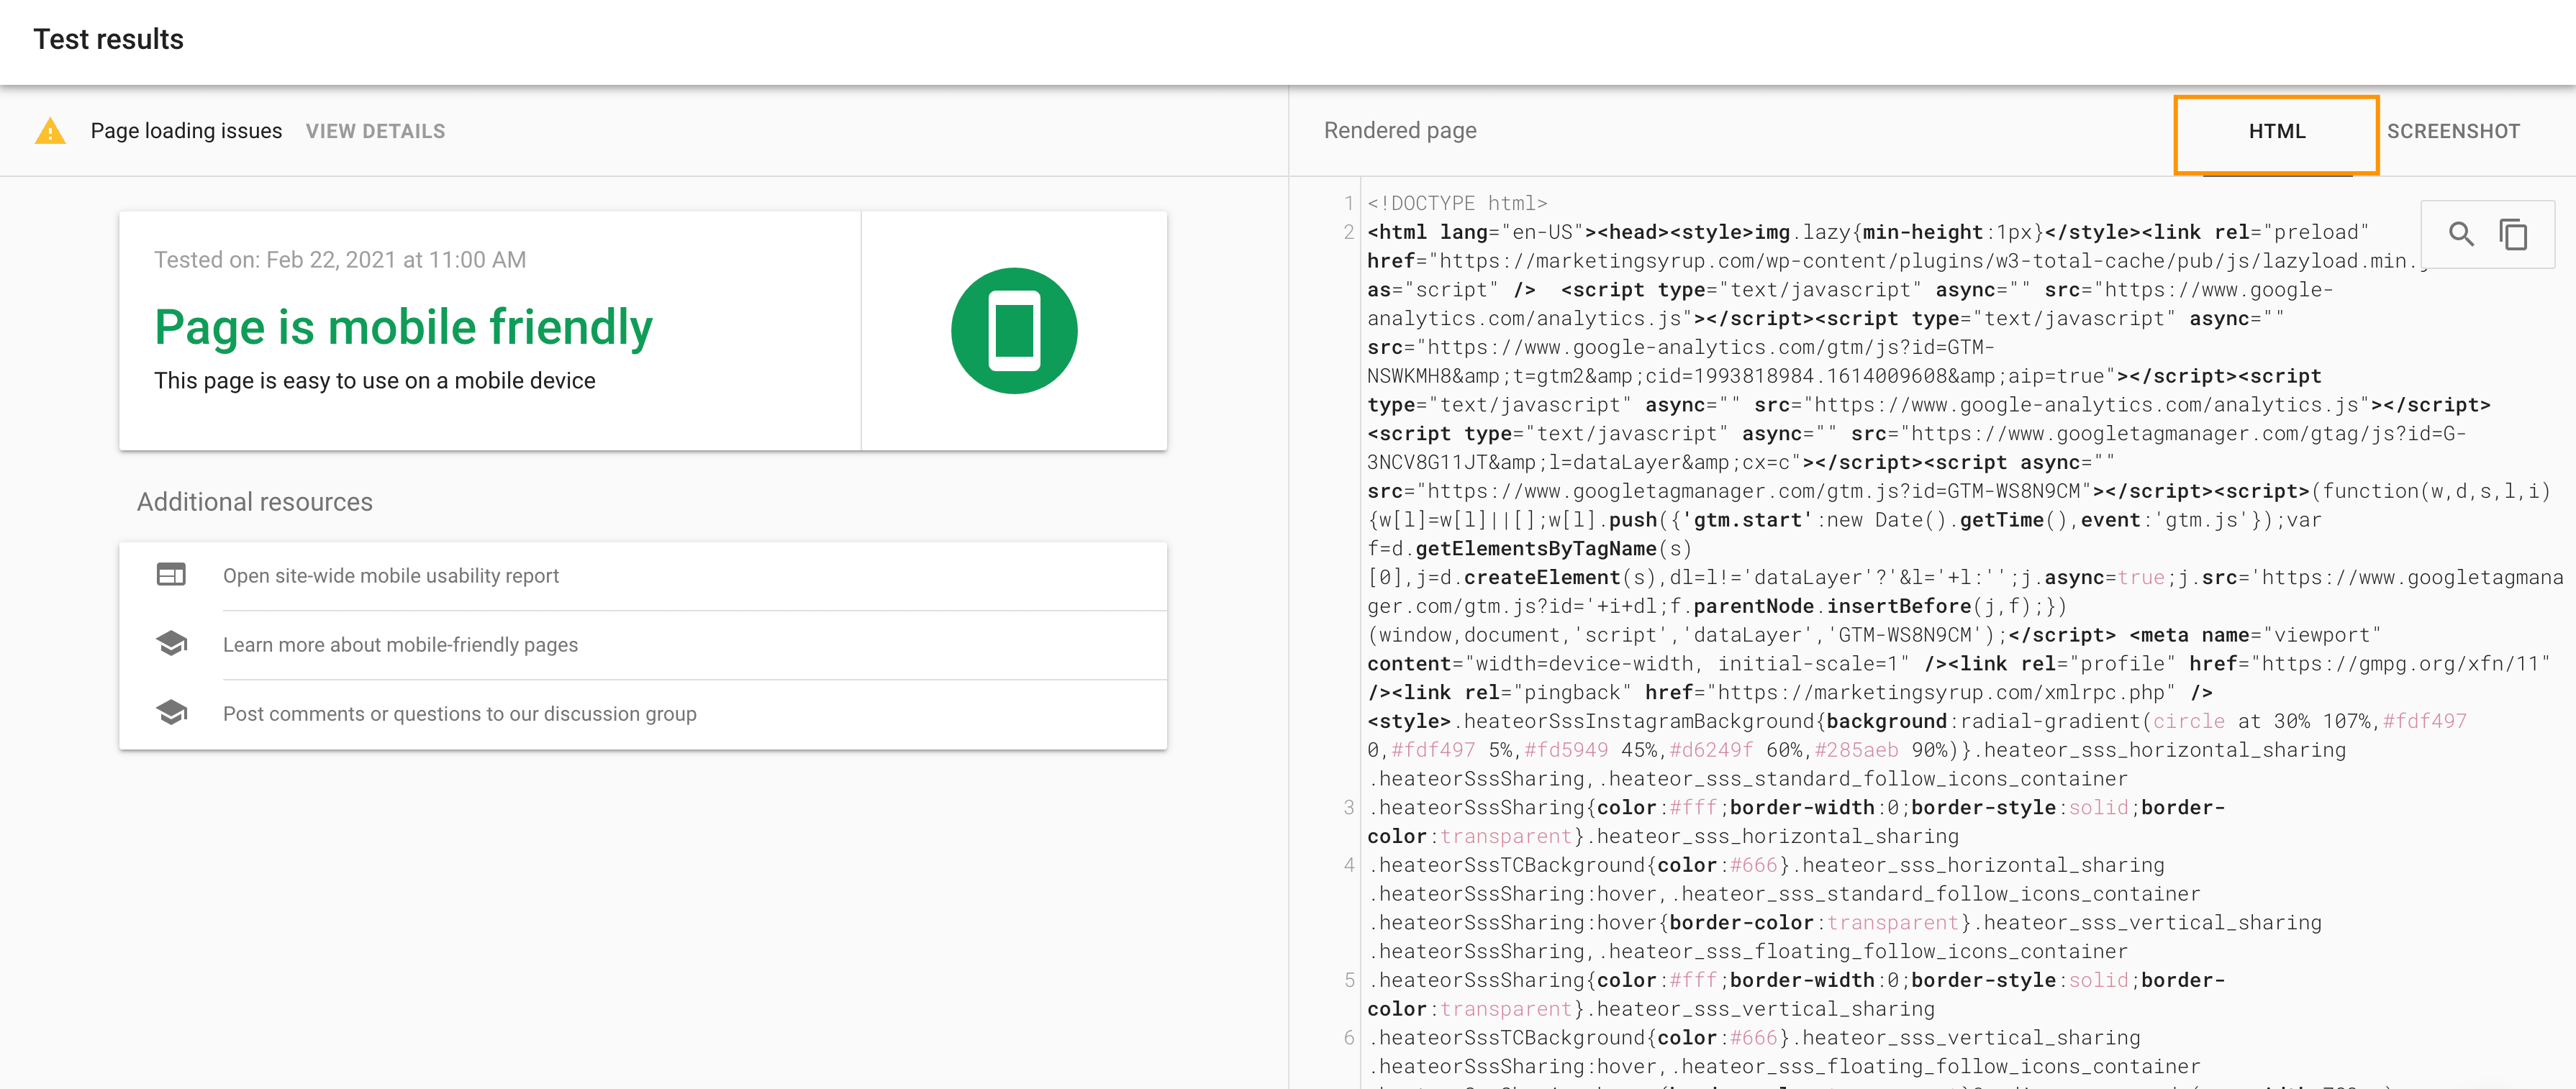 Google's HTML check for the mobile-friendly test tool